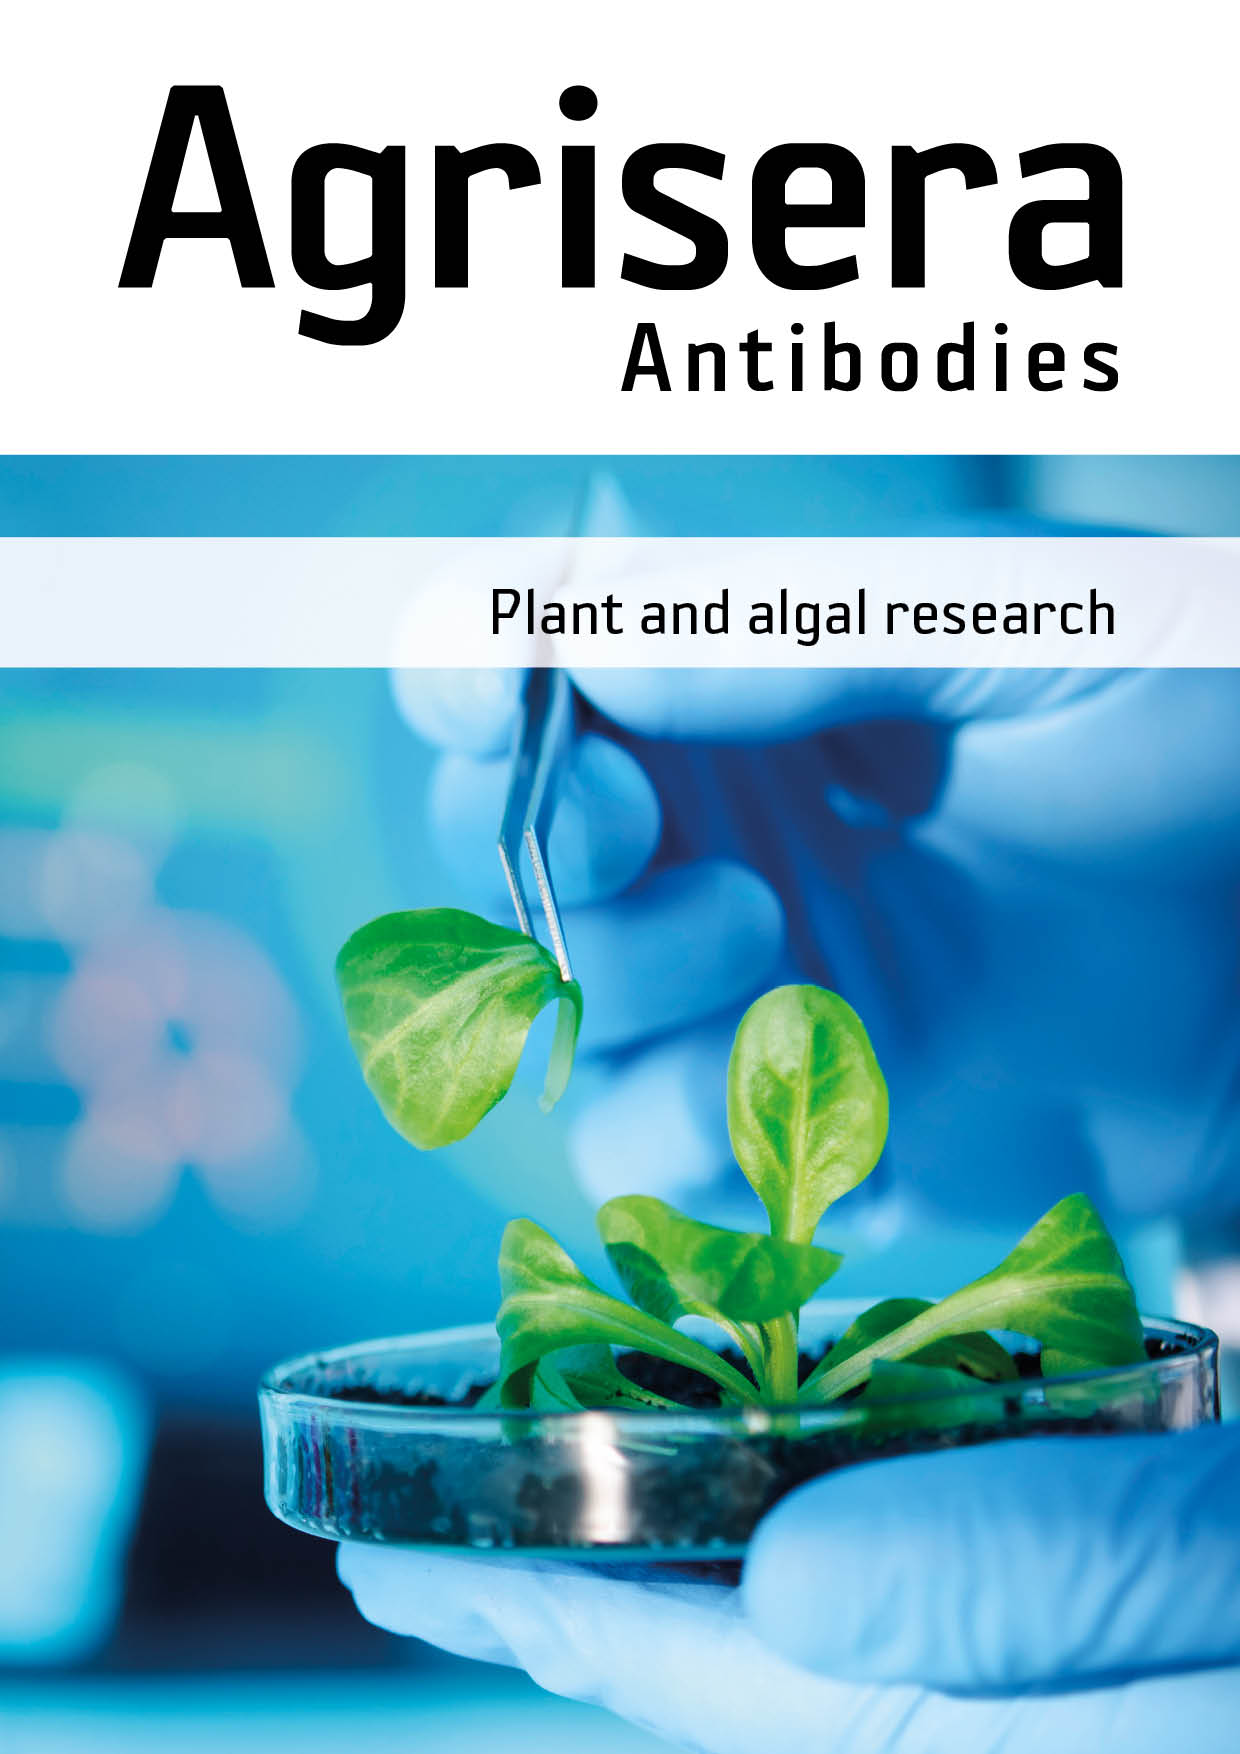 Agrisera plant and secondary antibody product catalog